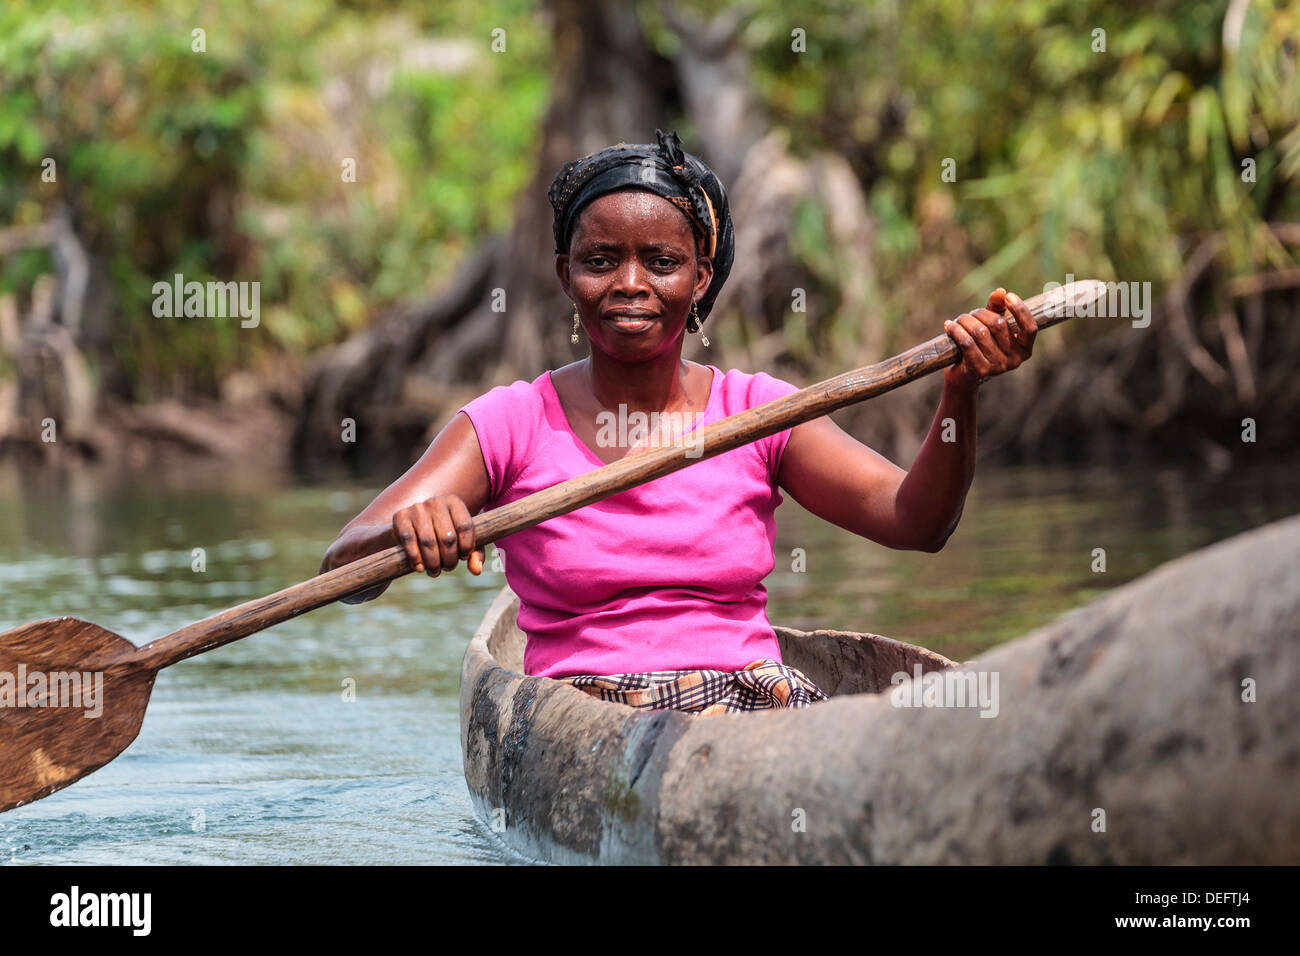 Africa, Liberia, Monrovia. Woman rowing traditional pirogue down Du River. - Stock Image